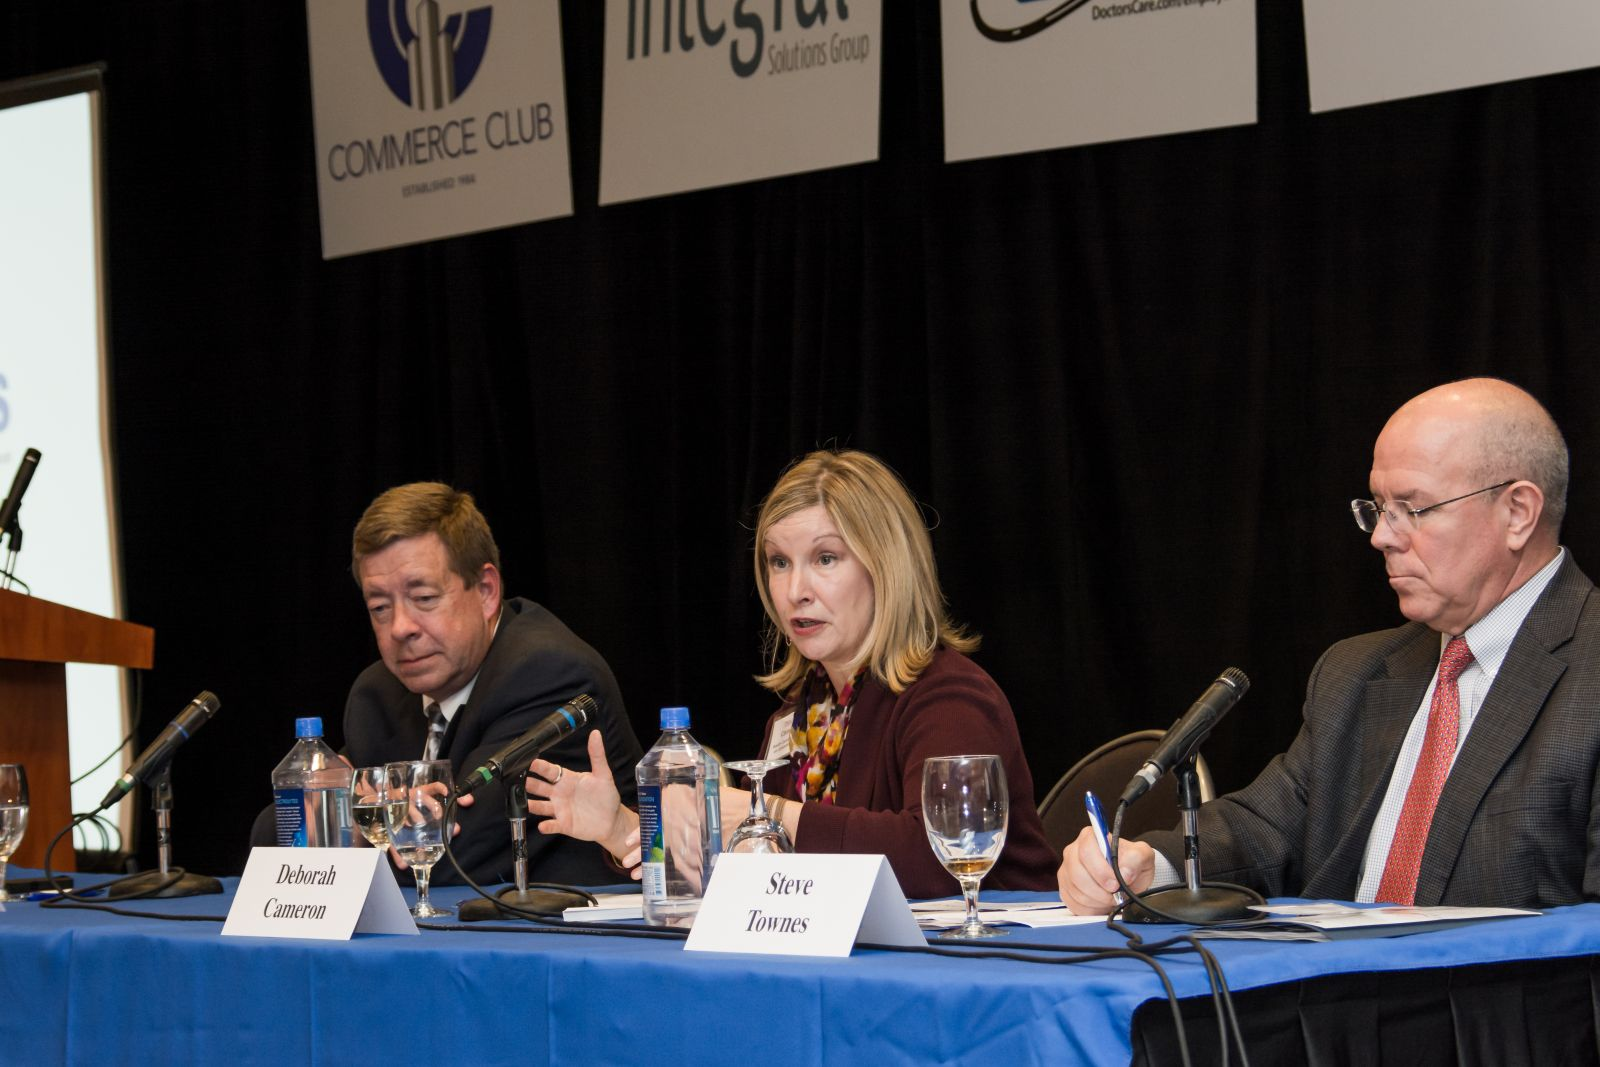 From left, Don Erickson, site director for Lockheed Martin Aeronautics in Greenville; Deborah Cameron, director of aerospace initiatives for the S.C. Council on Competitiveness, and Steve Townes, CEO and founder of Ranger Aerospace, discuss the aviation/aerospace industry during a GSA Business Report power event. (Photo/Kathy Allen)